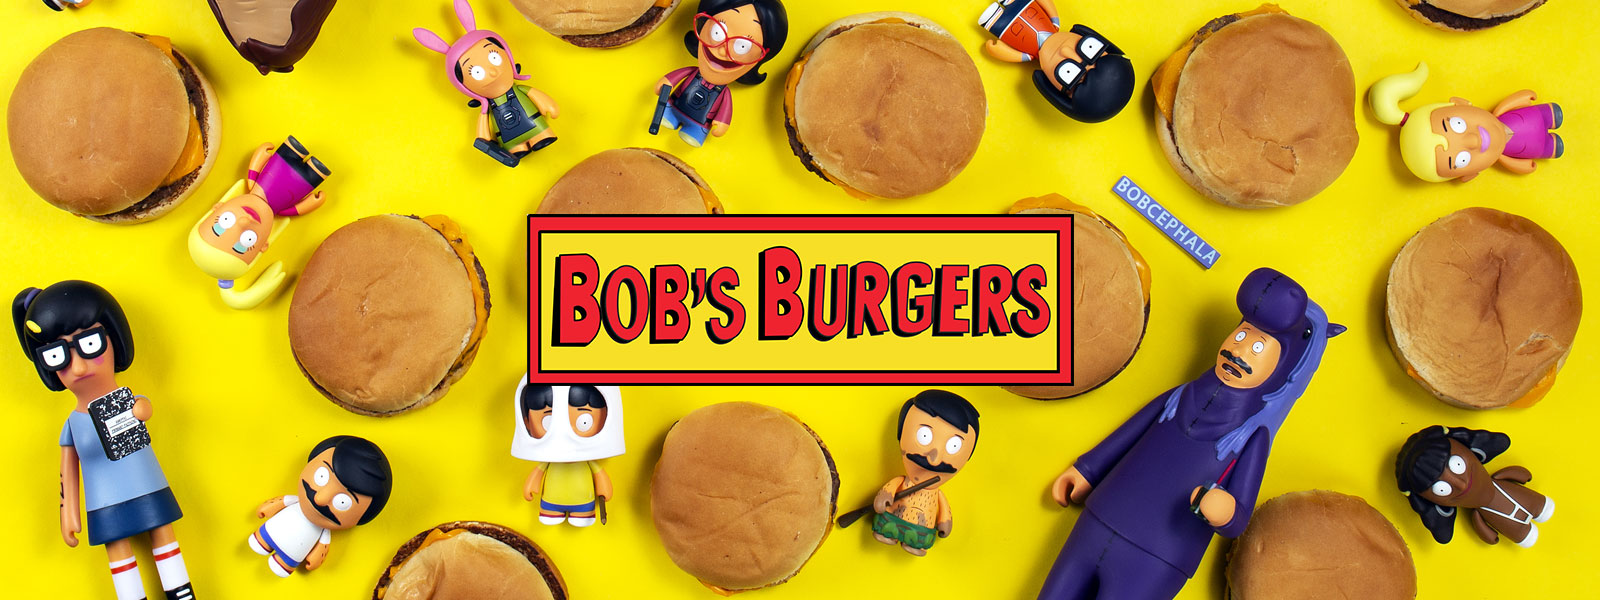 Bobs Burgers toys by Kidrobot